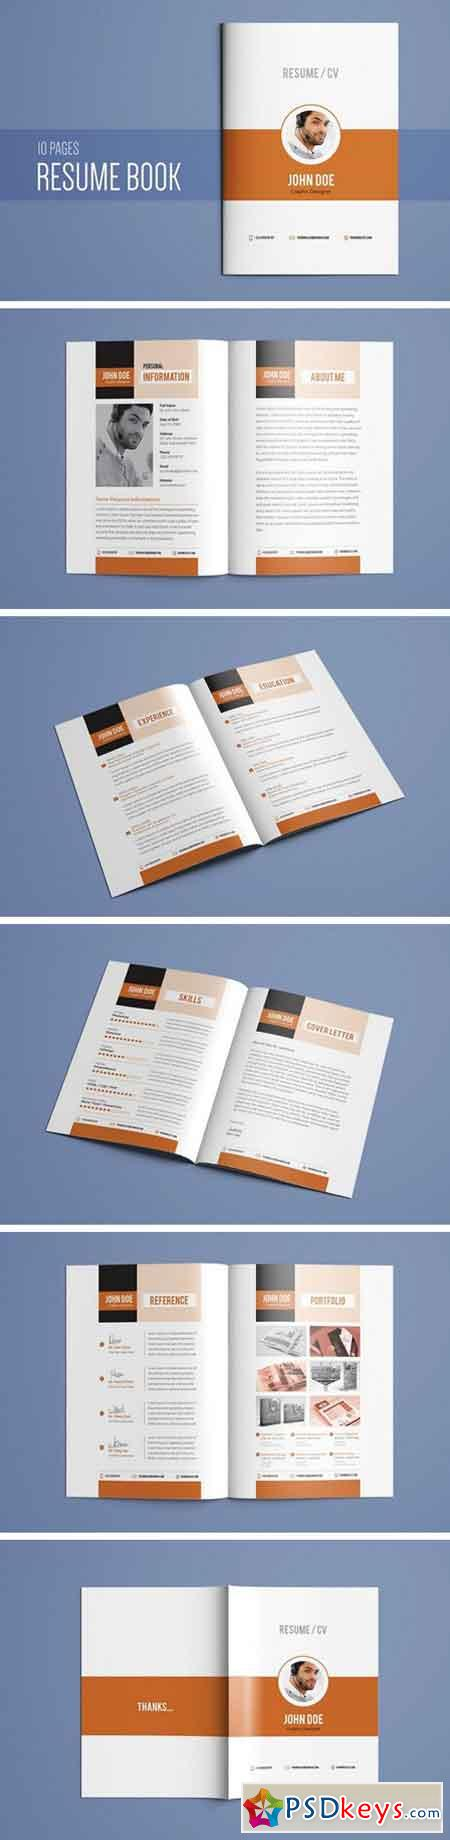 Resume Booklet Template Vol. 01 2161134